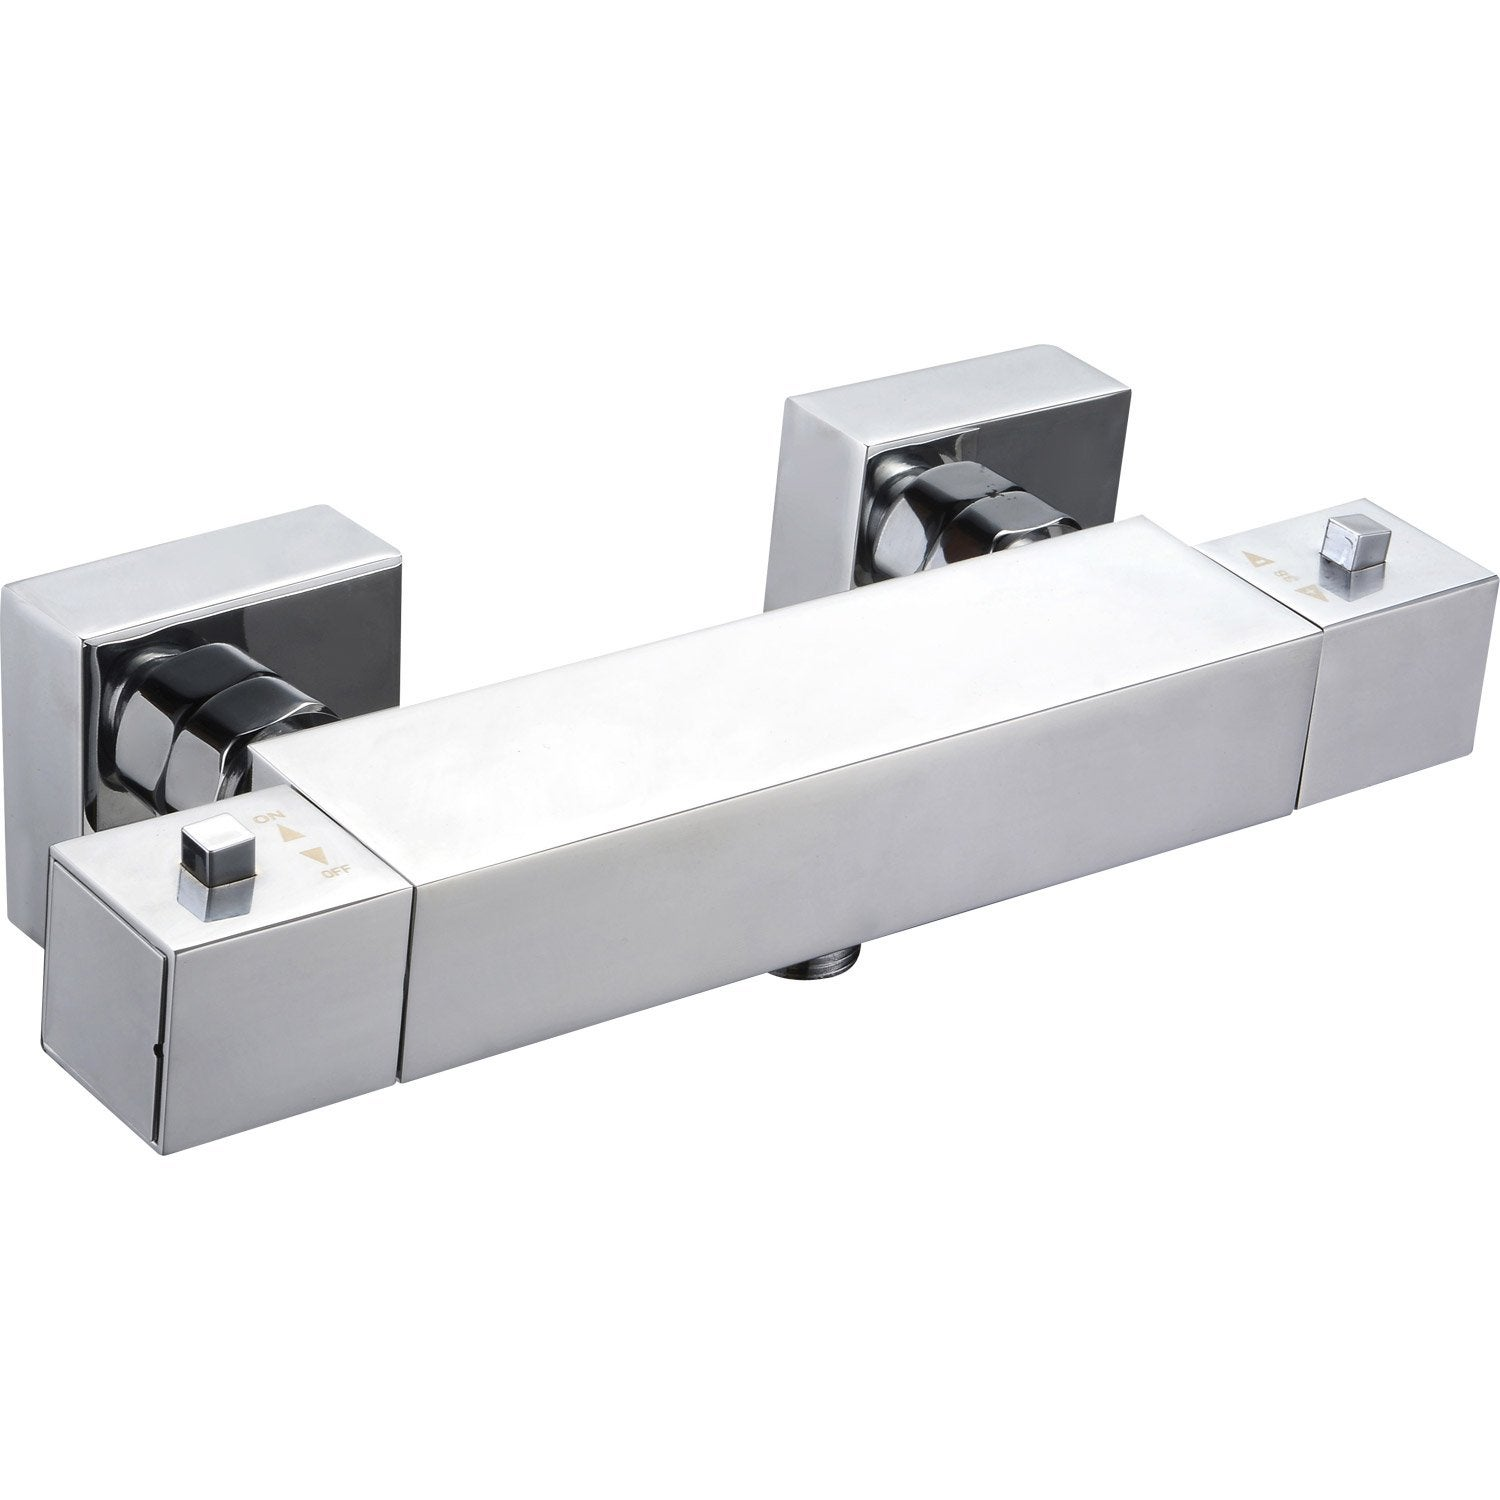 Mitigeur thermostatique de douche chrom sensea luka for Leroy merlin mitigeur bain douche